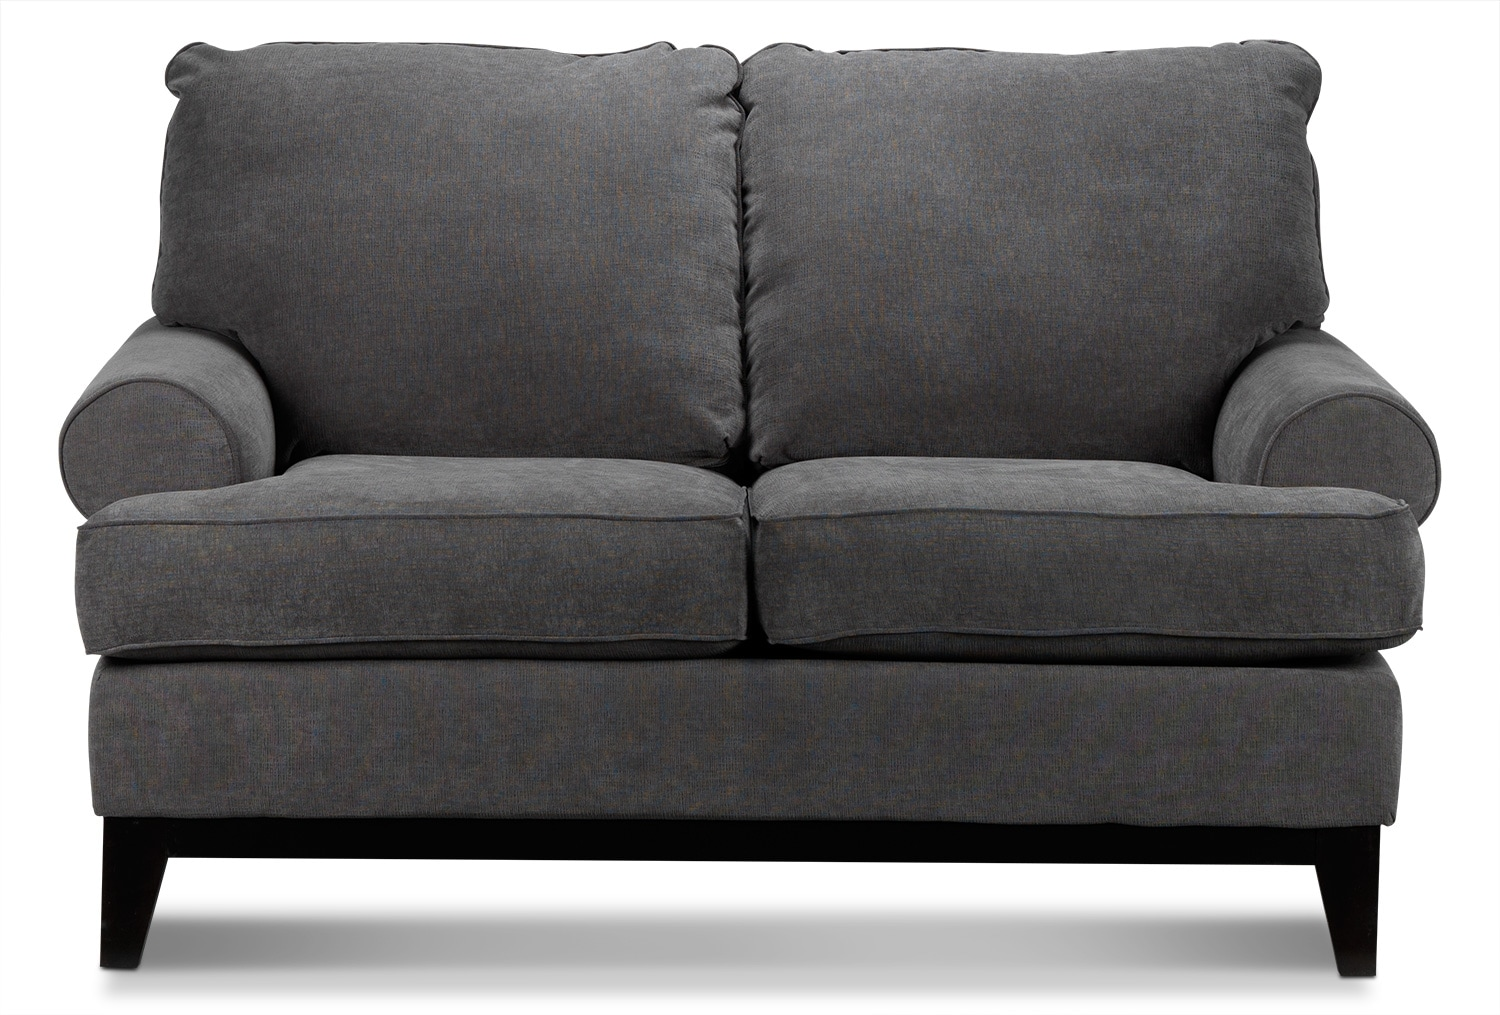 Living Room Furniture - Crizia Loveseat - Dark Grey